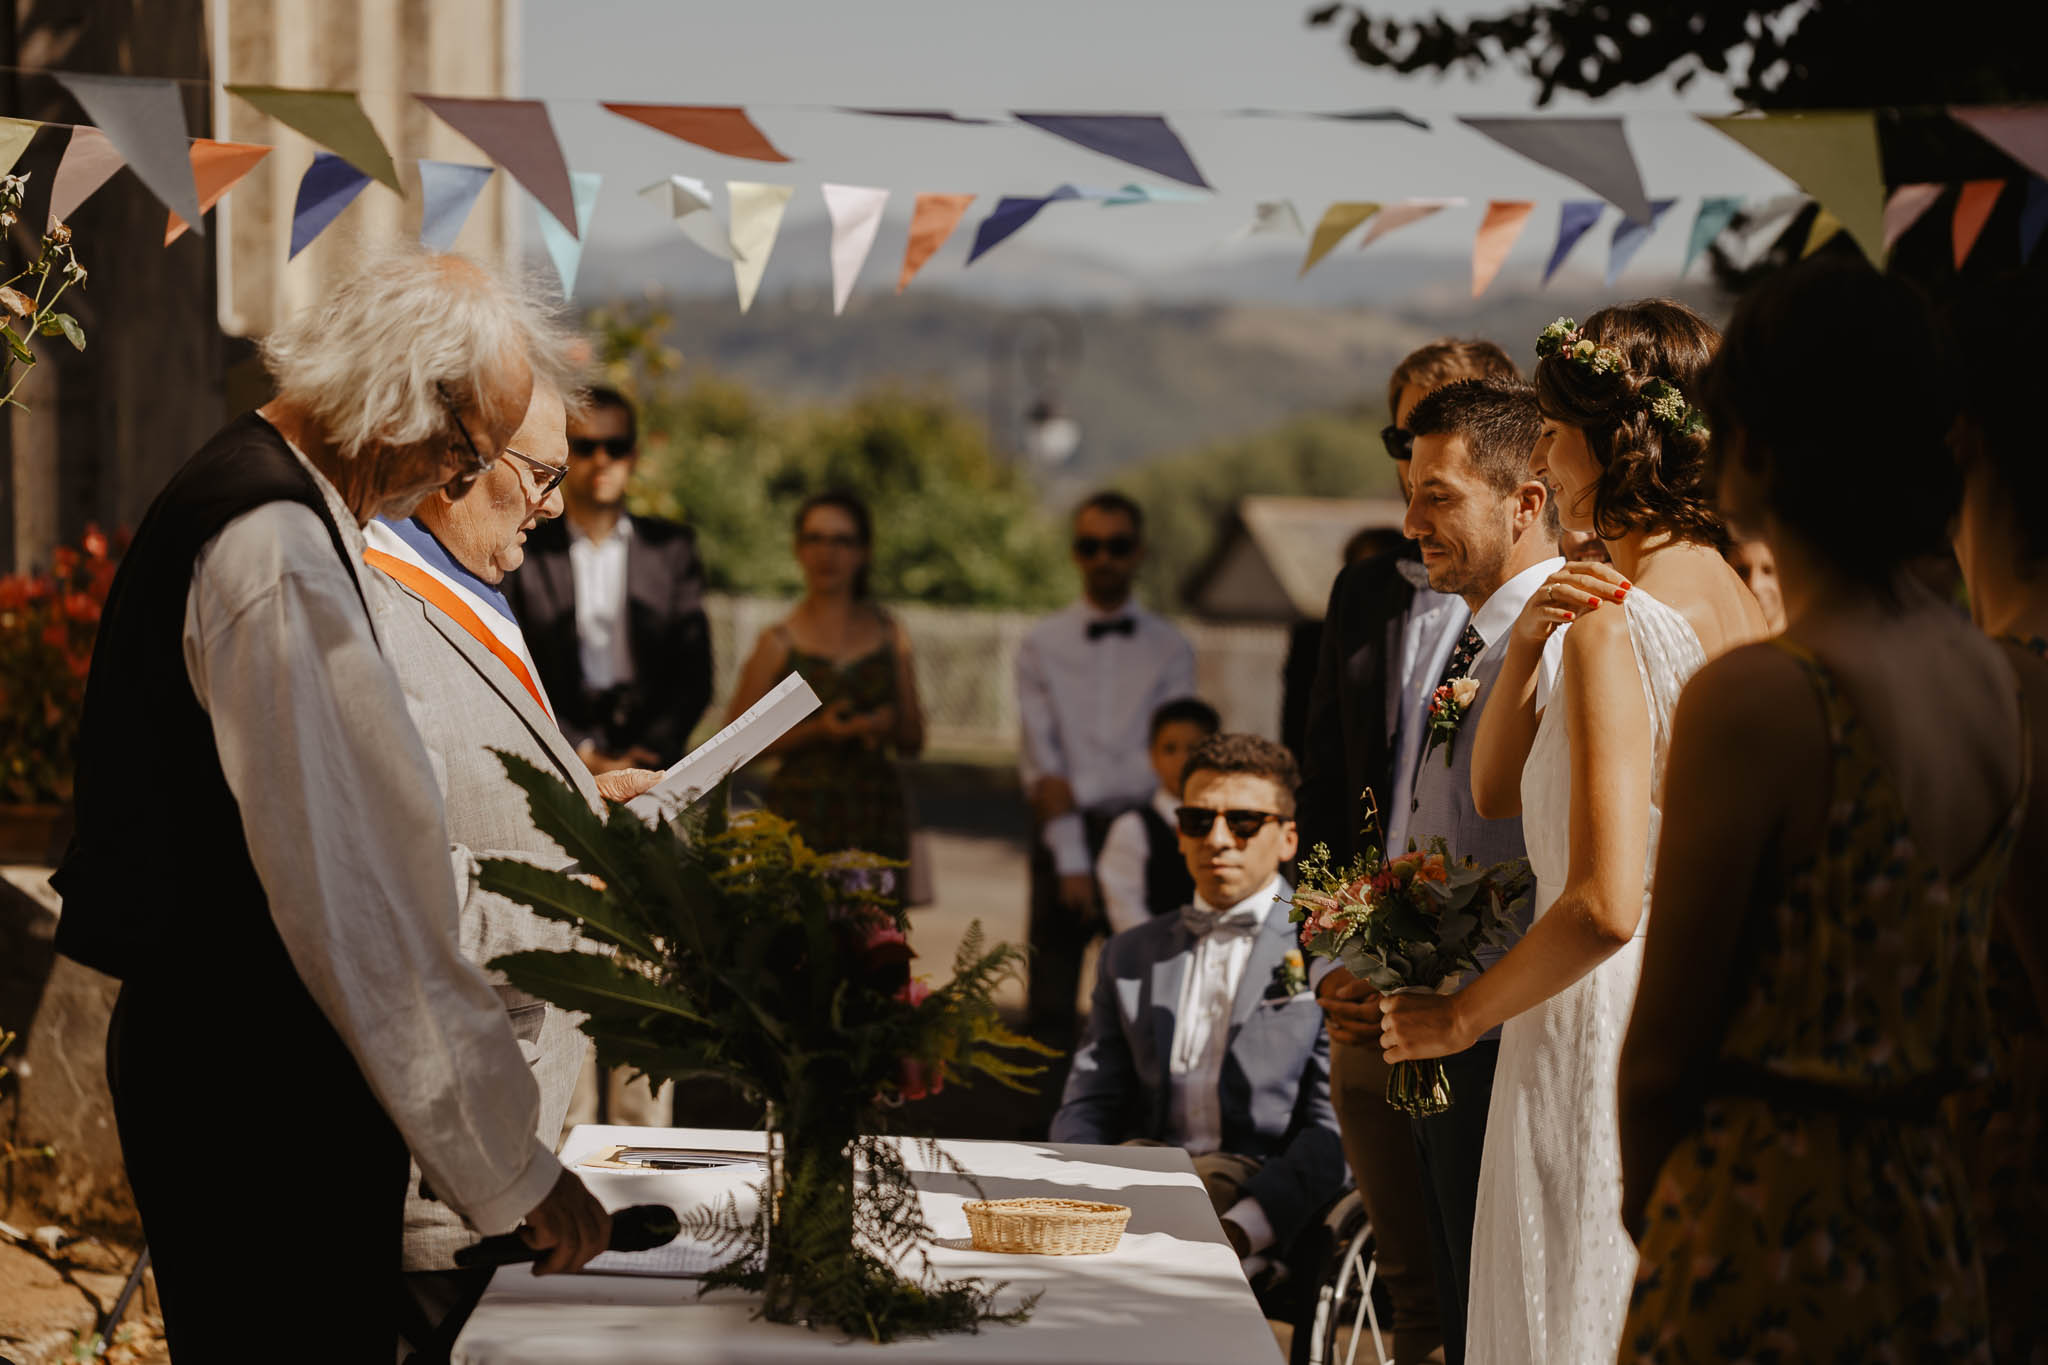 mariage-mairie-cantal-ingold-4.jpg